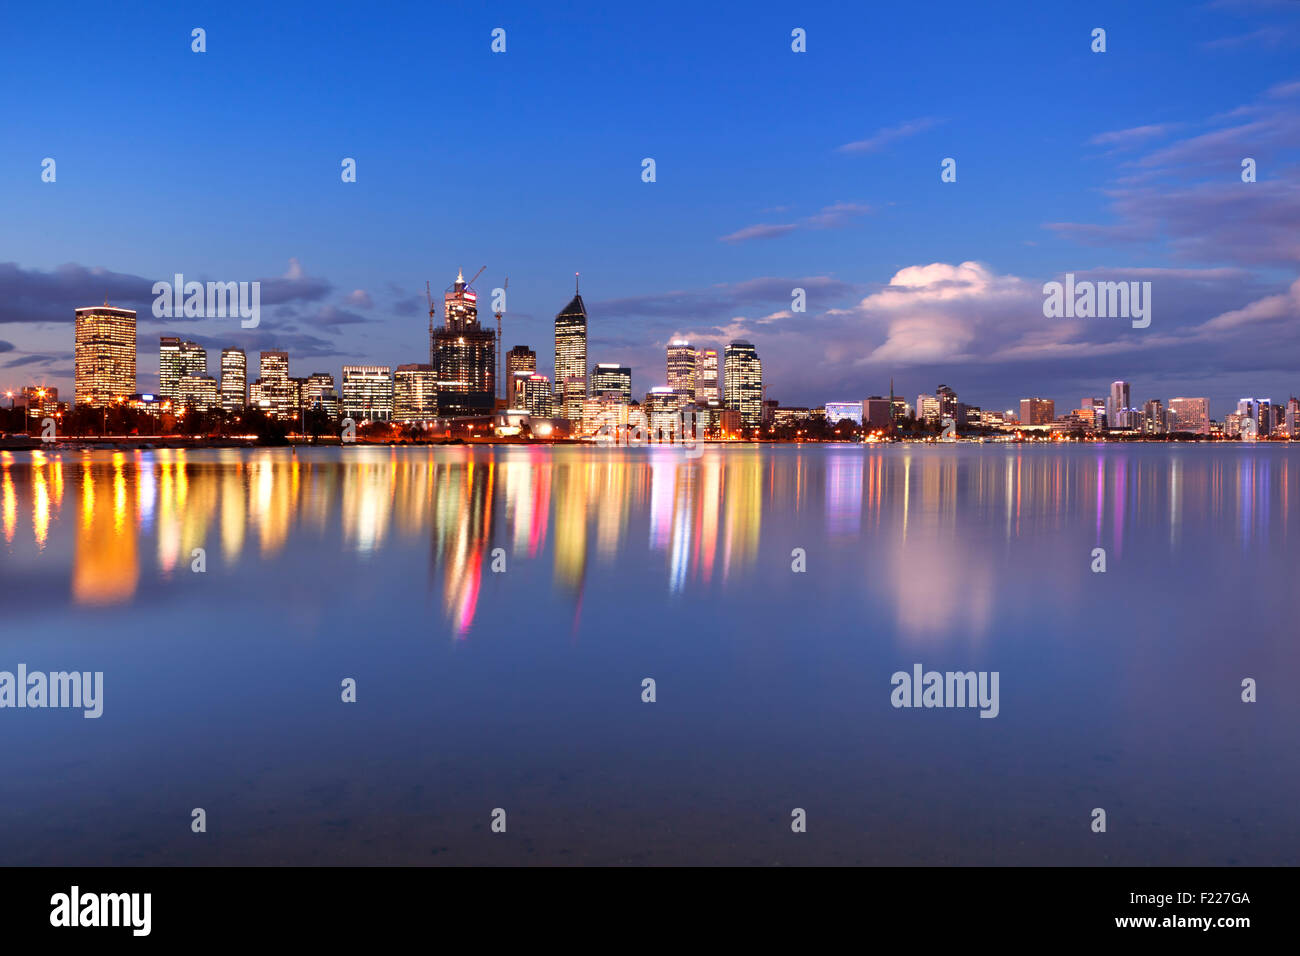 The skyline of Perth, Western Australia at night. Photographed from across the Swan River. - Stock Image